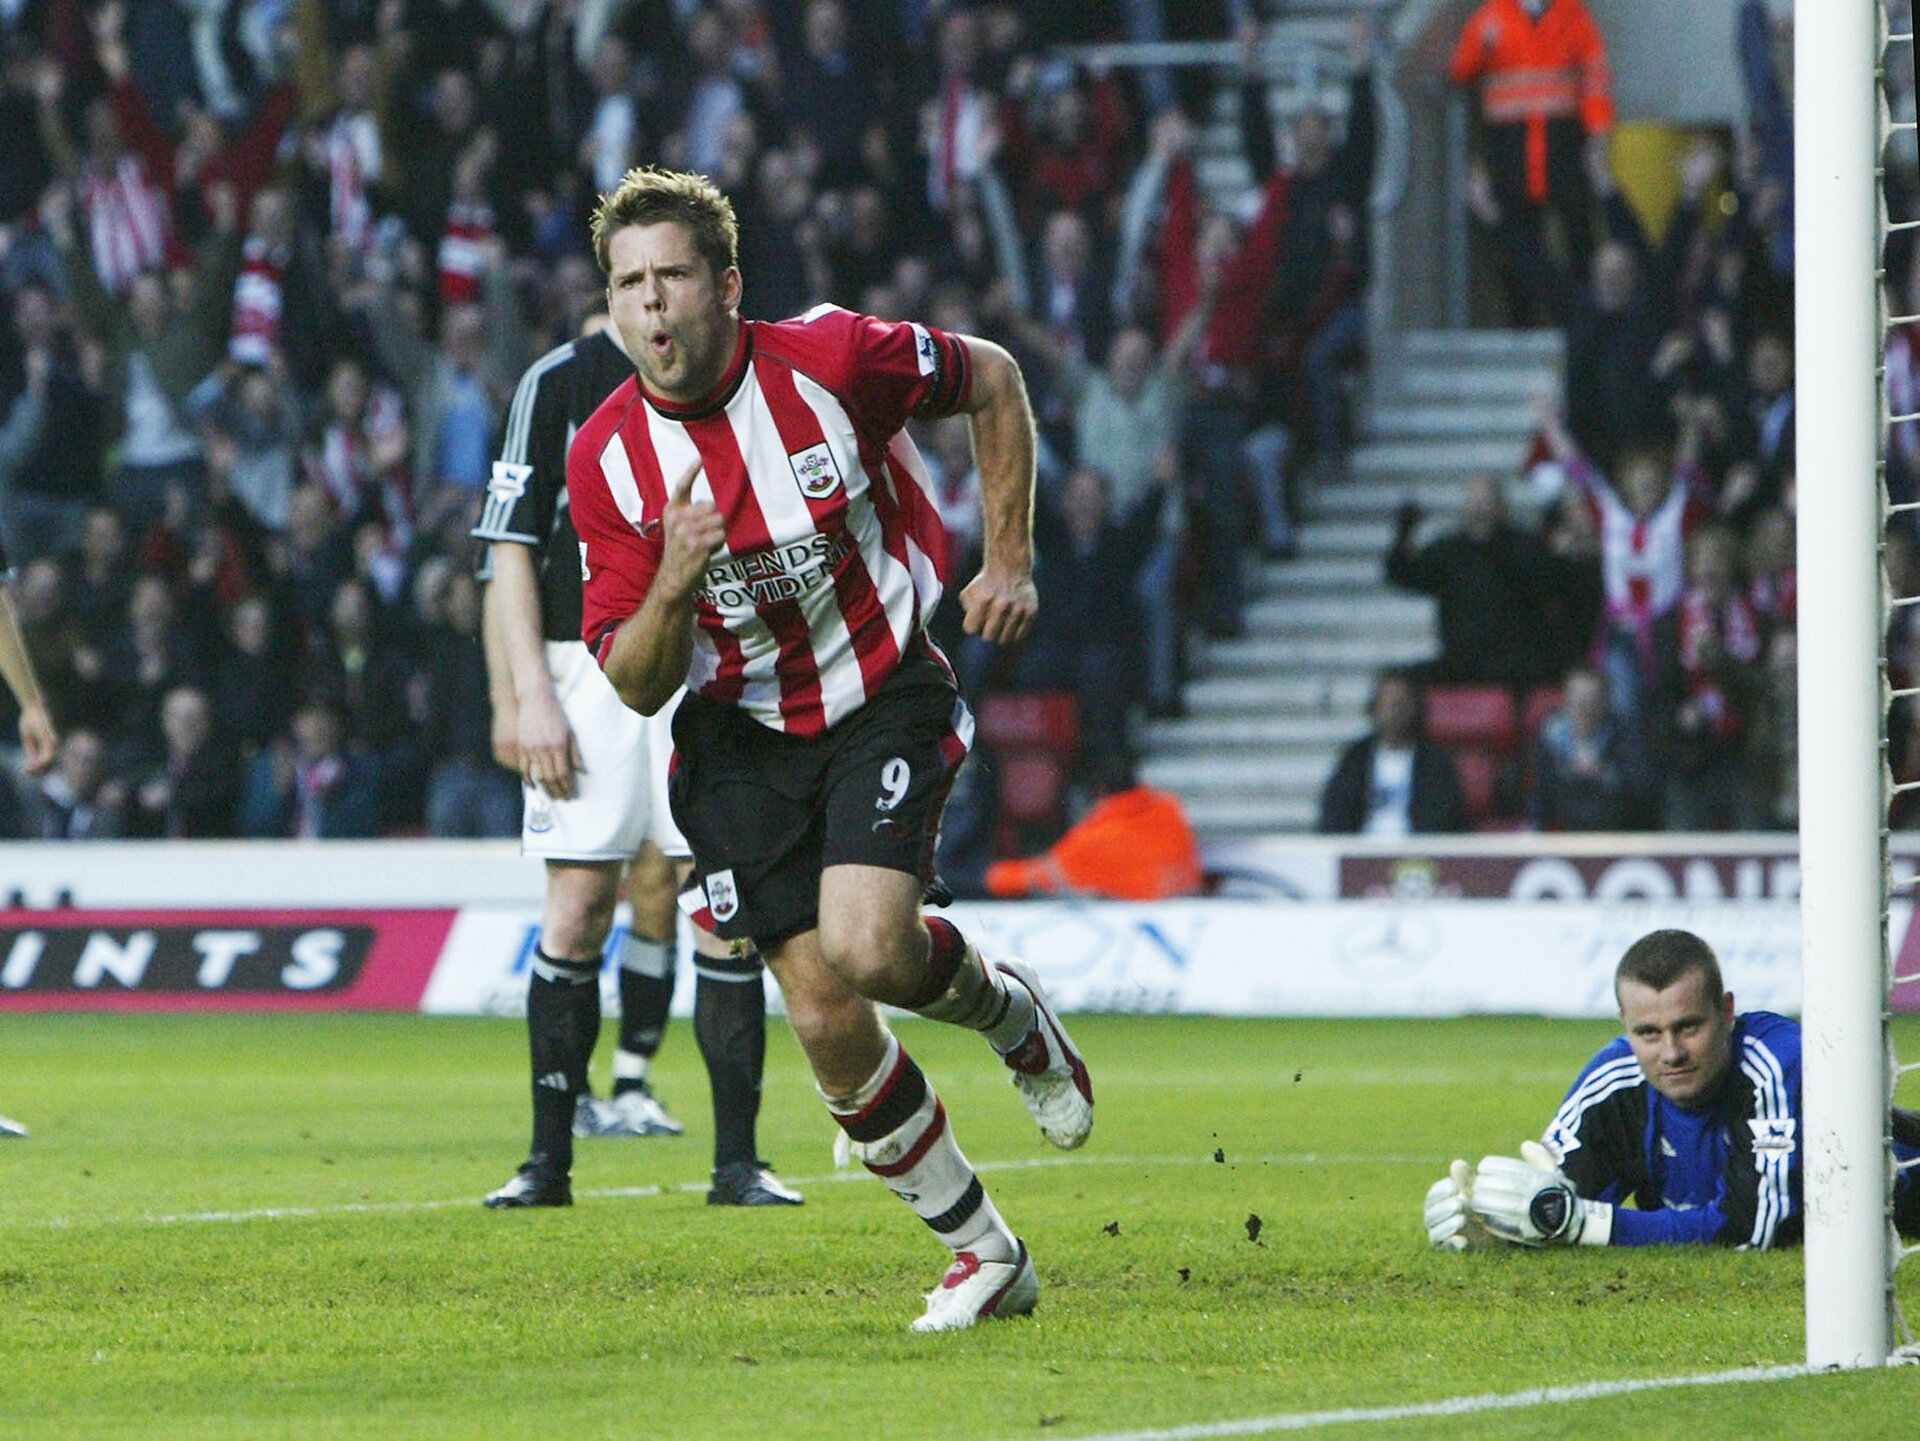 SOUTHAMPTON, ENGLAND - MAY 12:  James Beattie of Southampton celebrates scoring their first goal during the FA Barclaycard Premiership match between Southampton and Newcastle United at St. Mary's Stadium on May 12, 2004 in Southampton, England.  (Photo by Ben Radford/Getty Images)